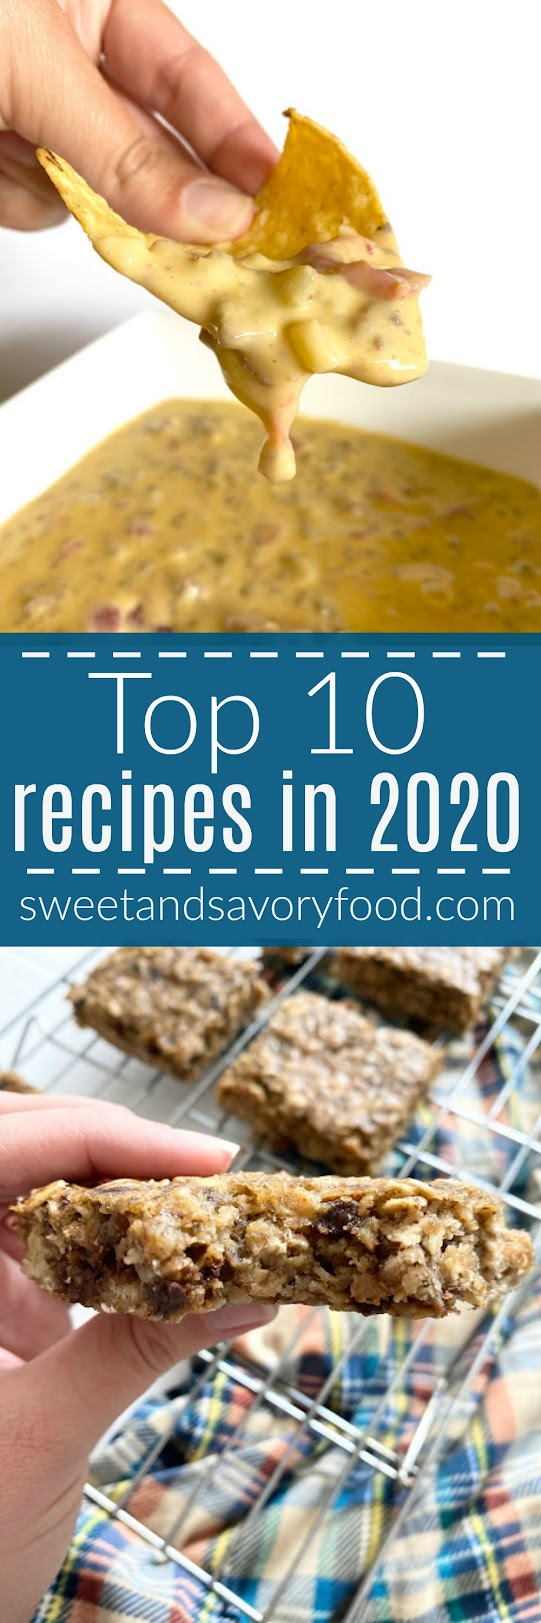 Top 10 Recipes of 2020...from easy desserts to dips and pizza. 2020 seems to be about comfort food! A great list of my blog's favorite recipes this past year